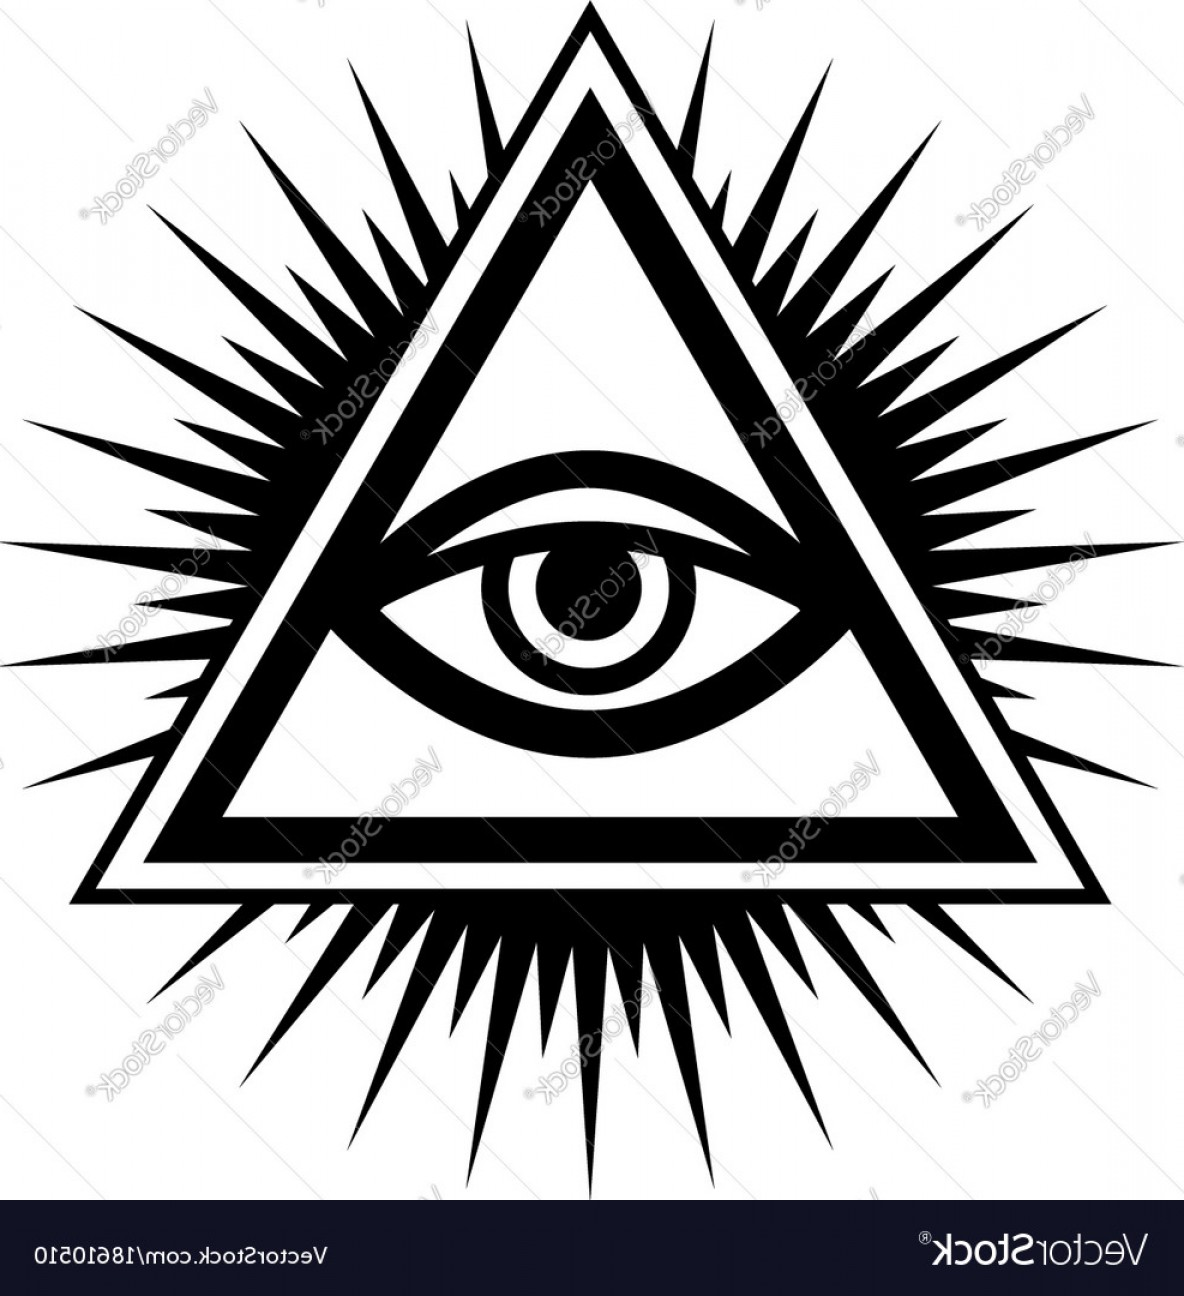 Pyramid With Eye Of Providence Vector: All Seeing Eye The Eye Of Providence Vector